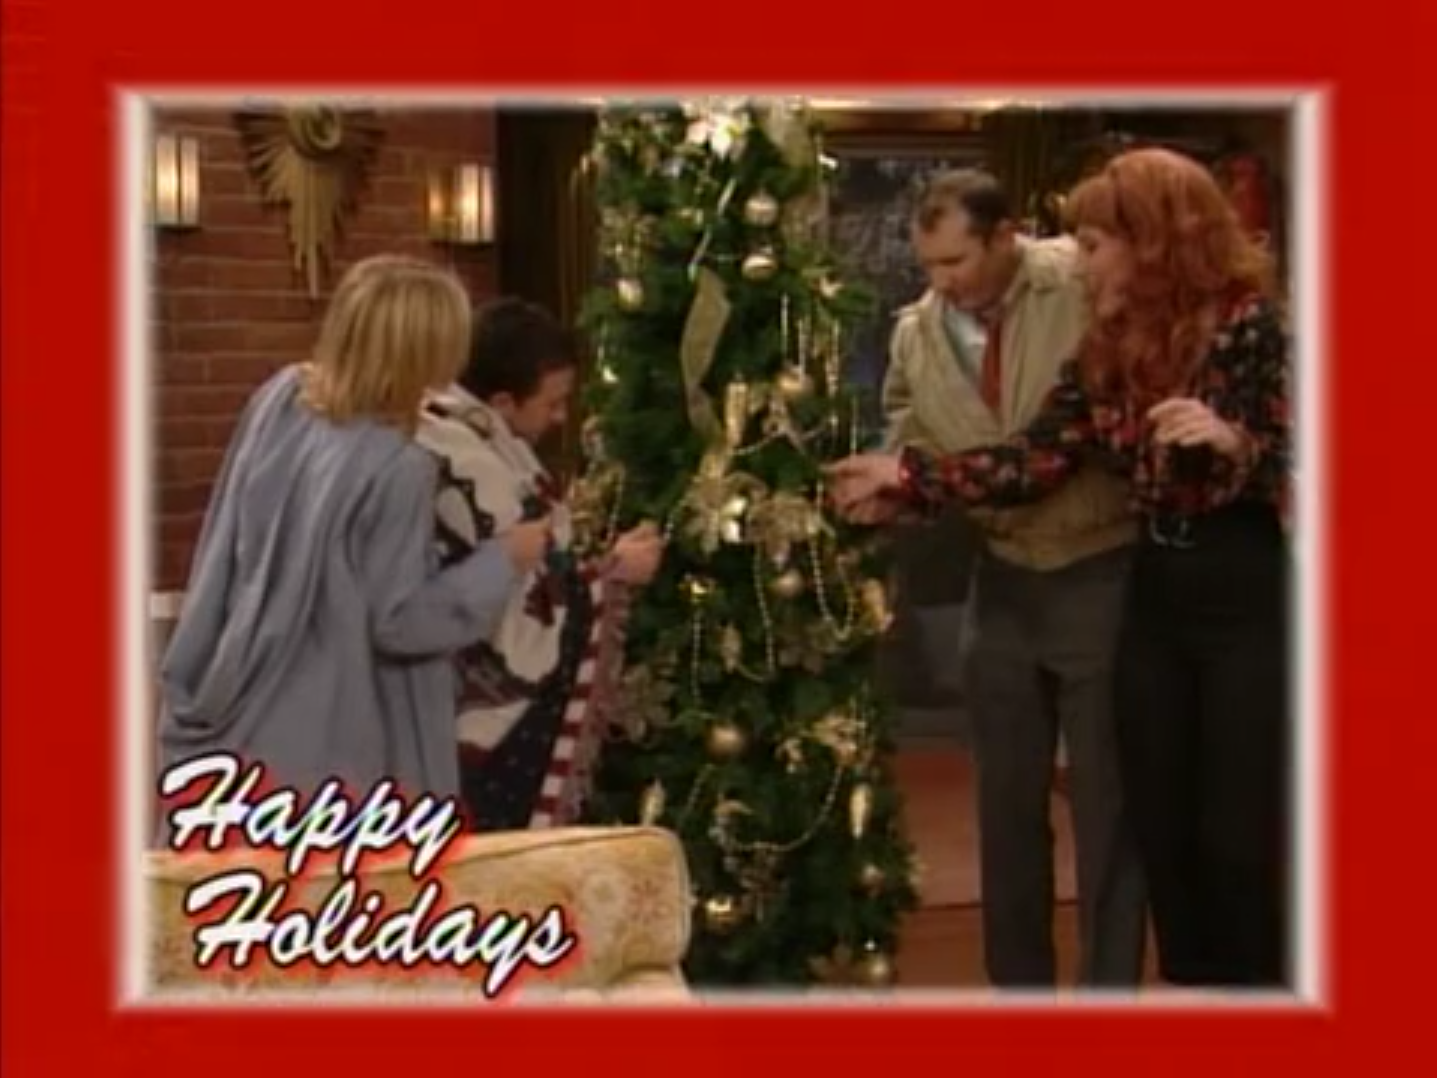 Married With Children Christmas.Christmas Married With Children Wiki Fandom Powered By Wikia